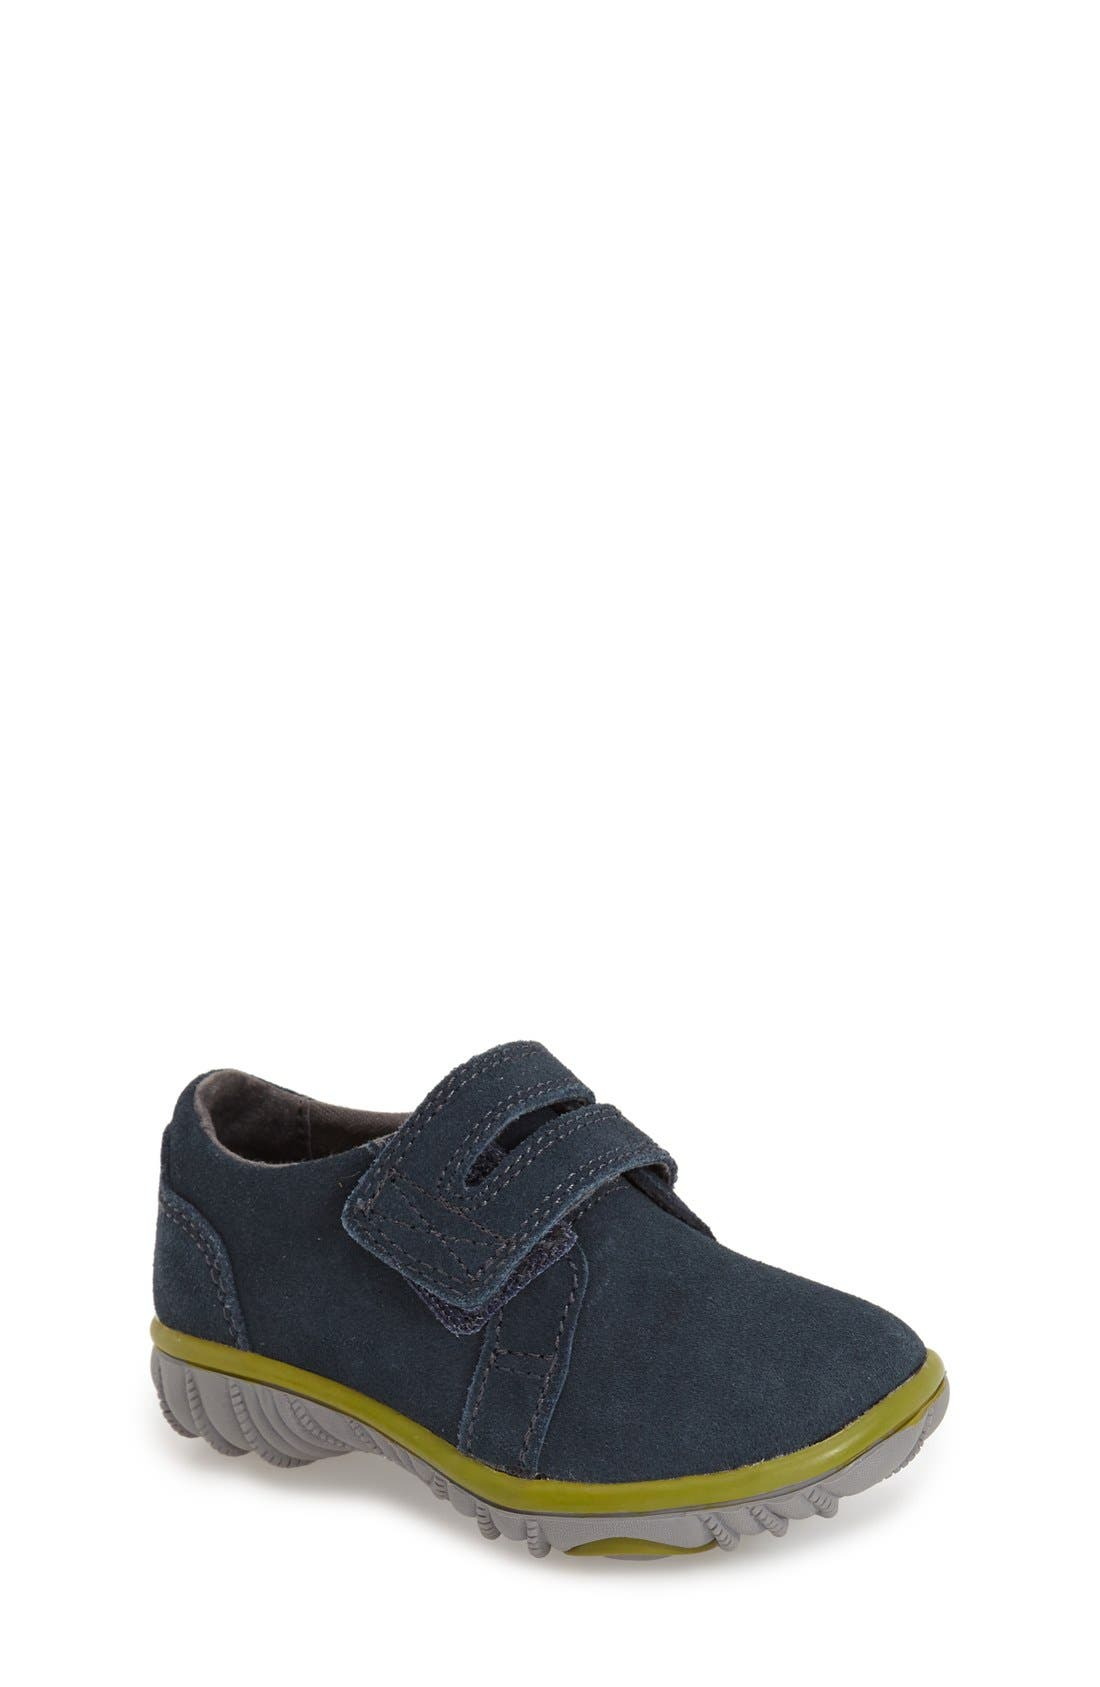 BOGS 'Wall Ball' Water Resistant Slip-On